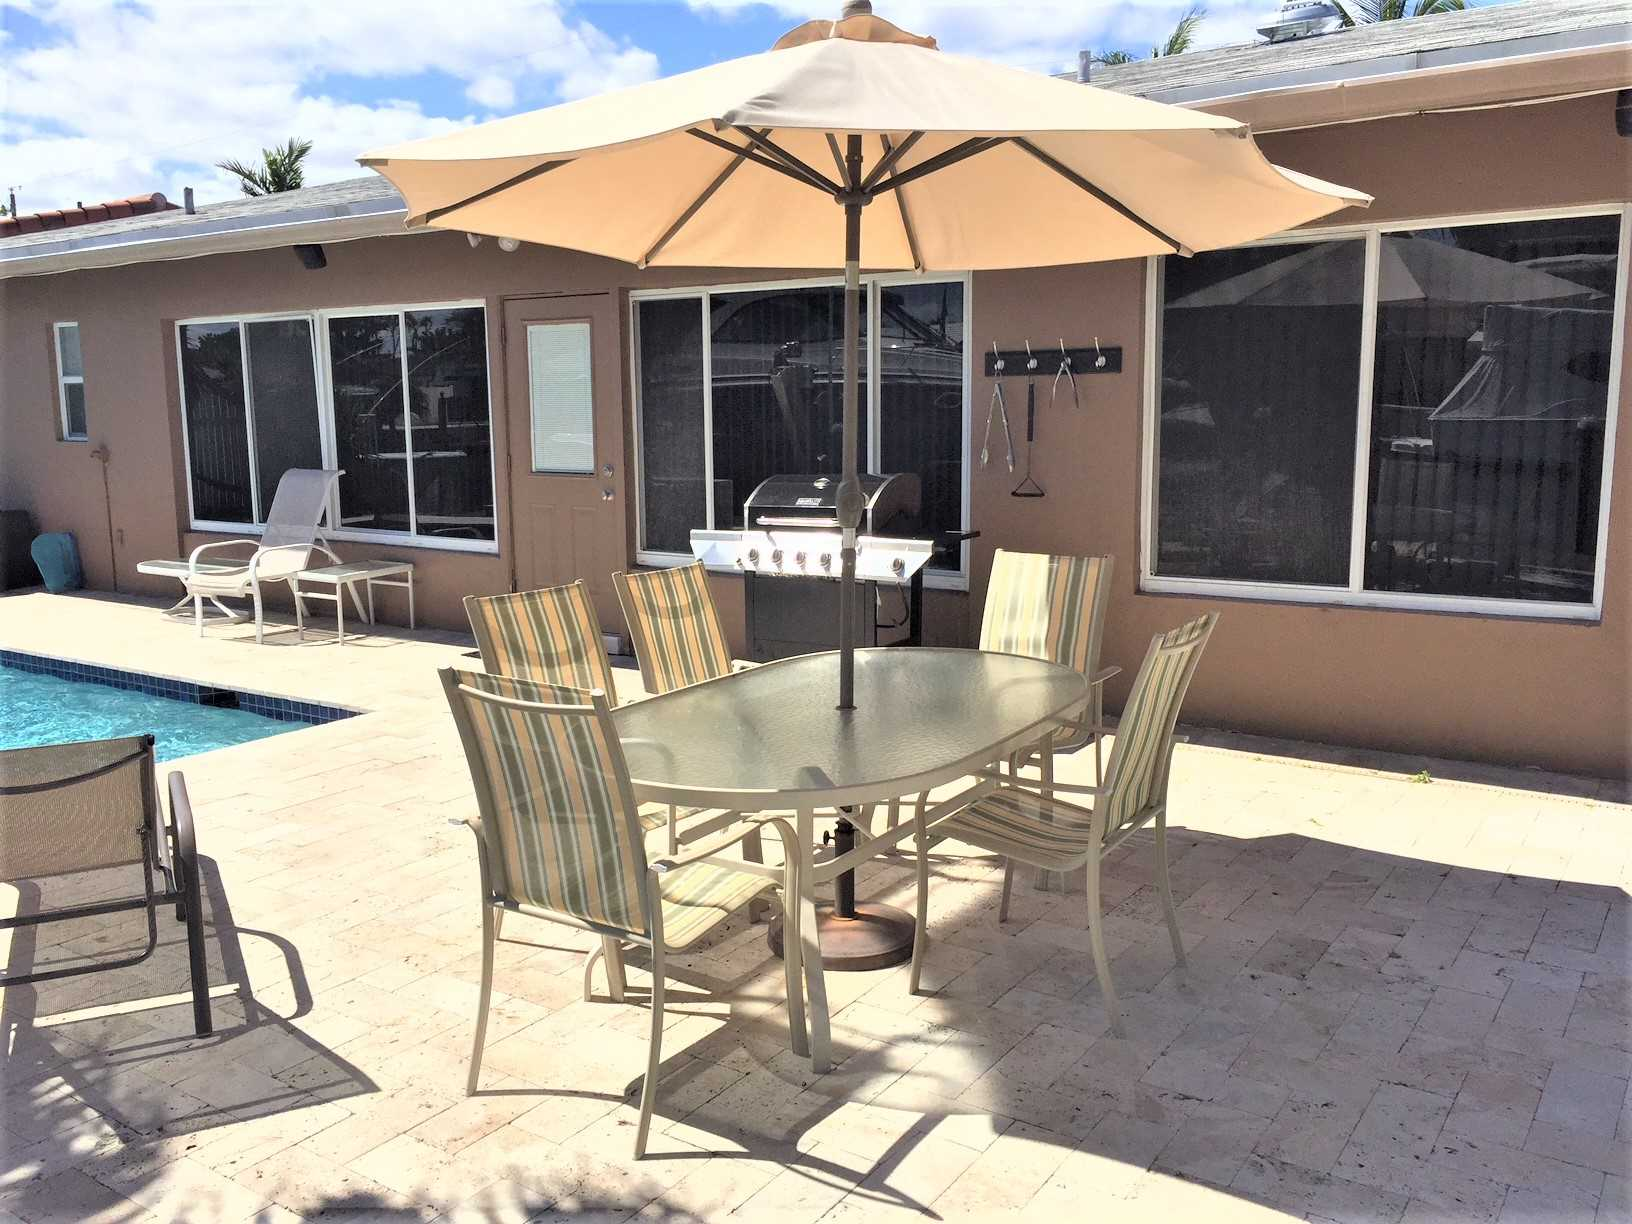 The new pool deck has BBQ and ample seating for a large fami